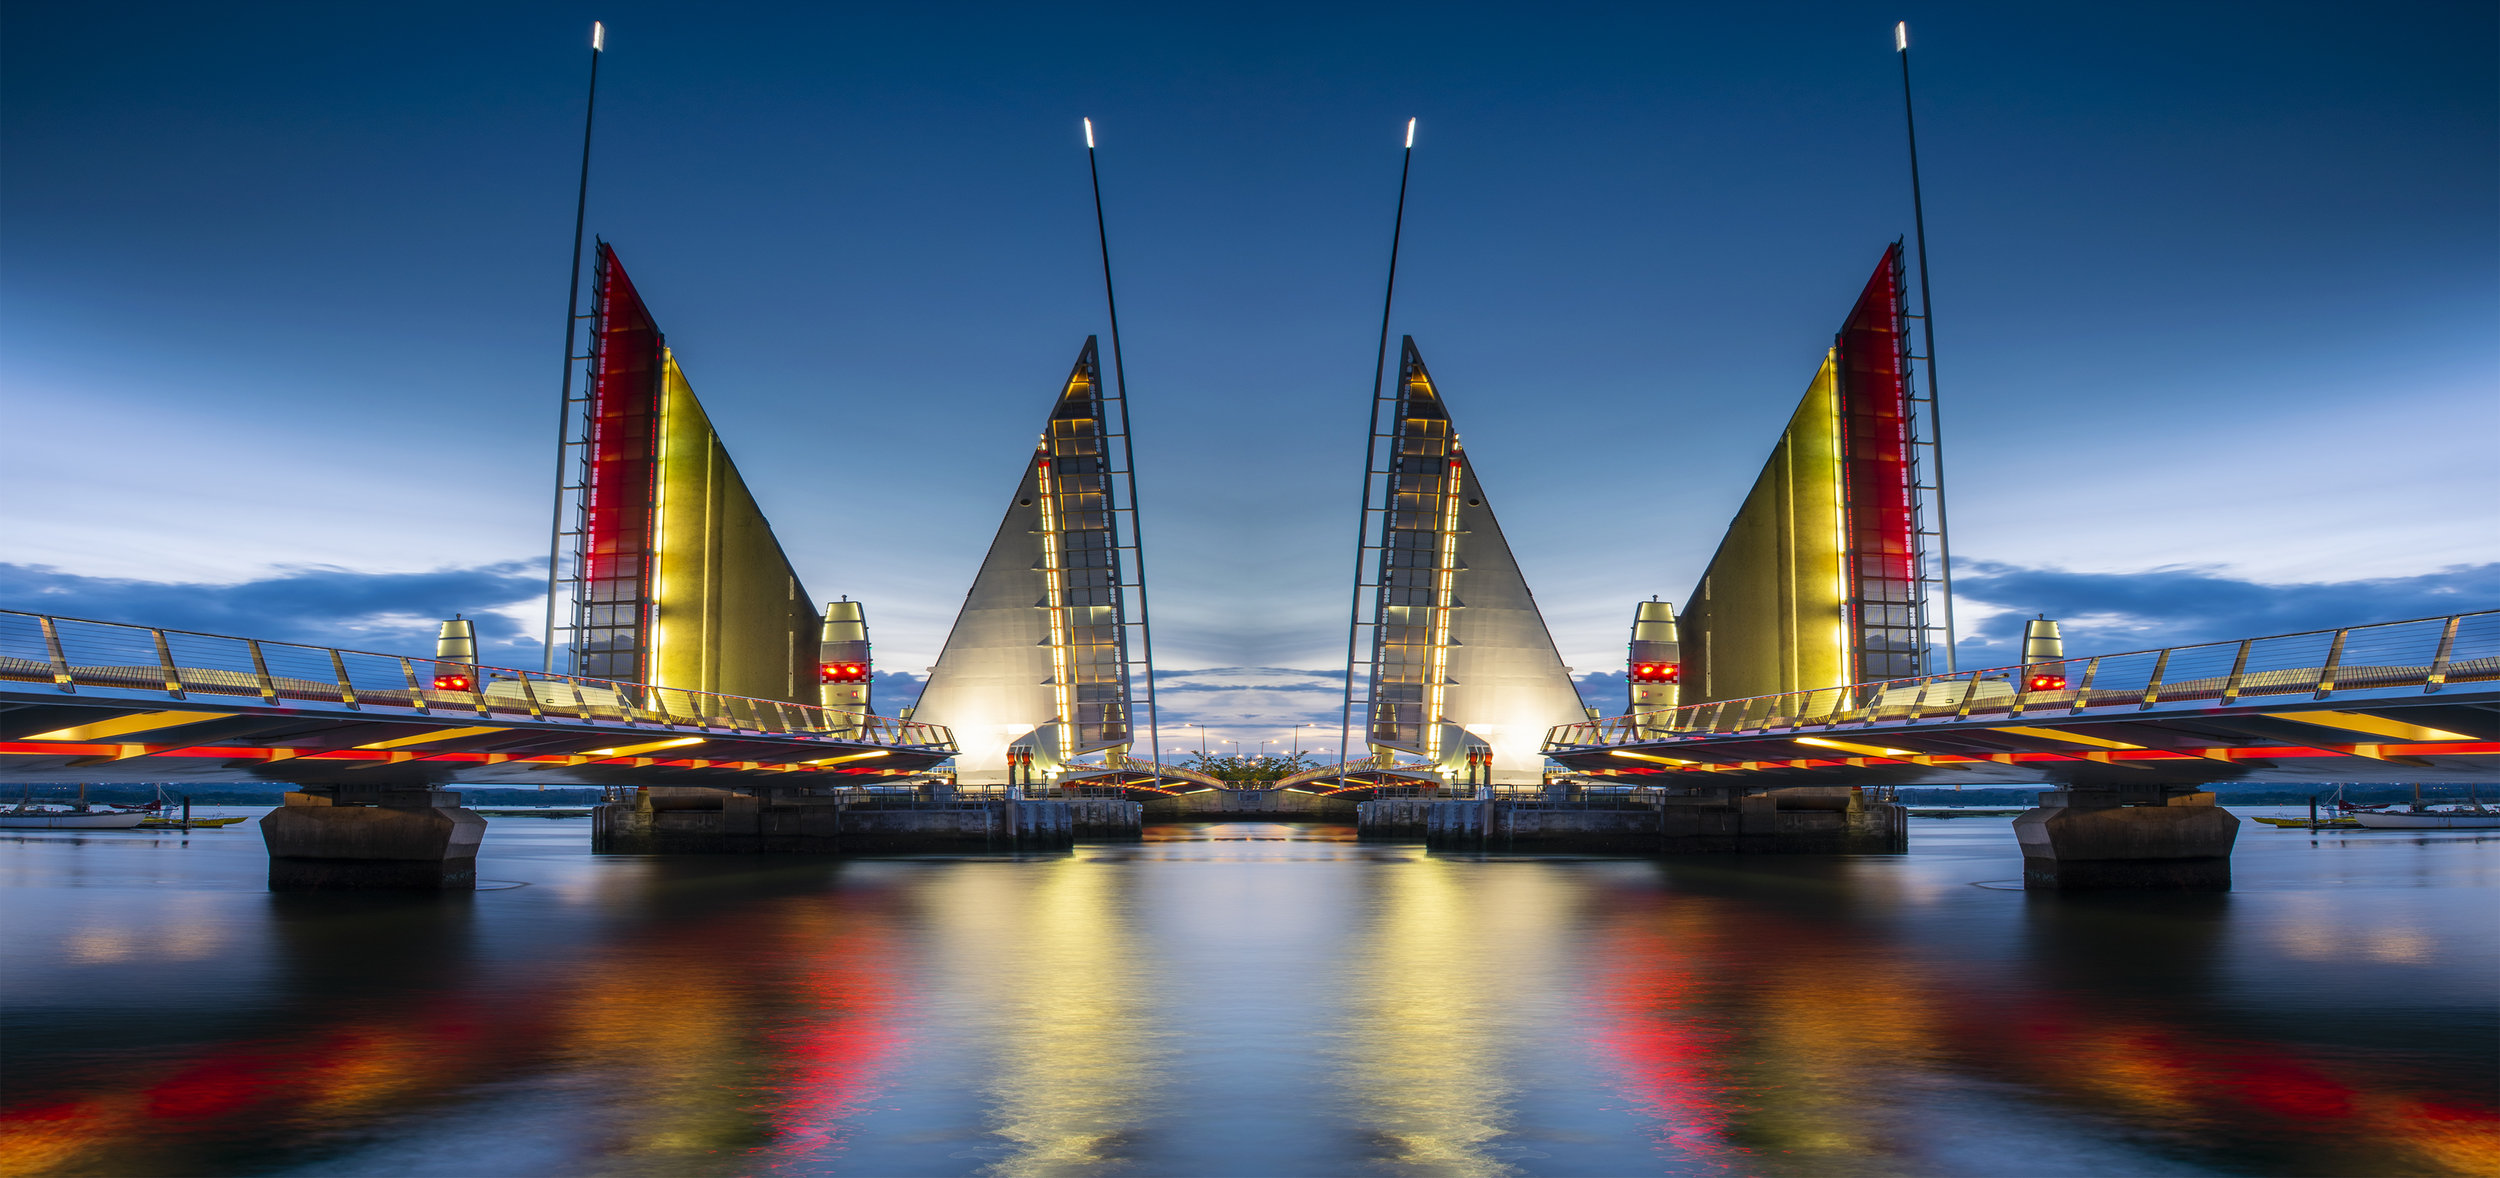 Twin sails #2 - Copy.jpg